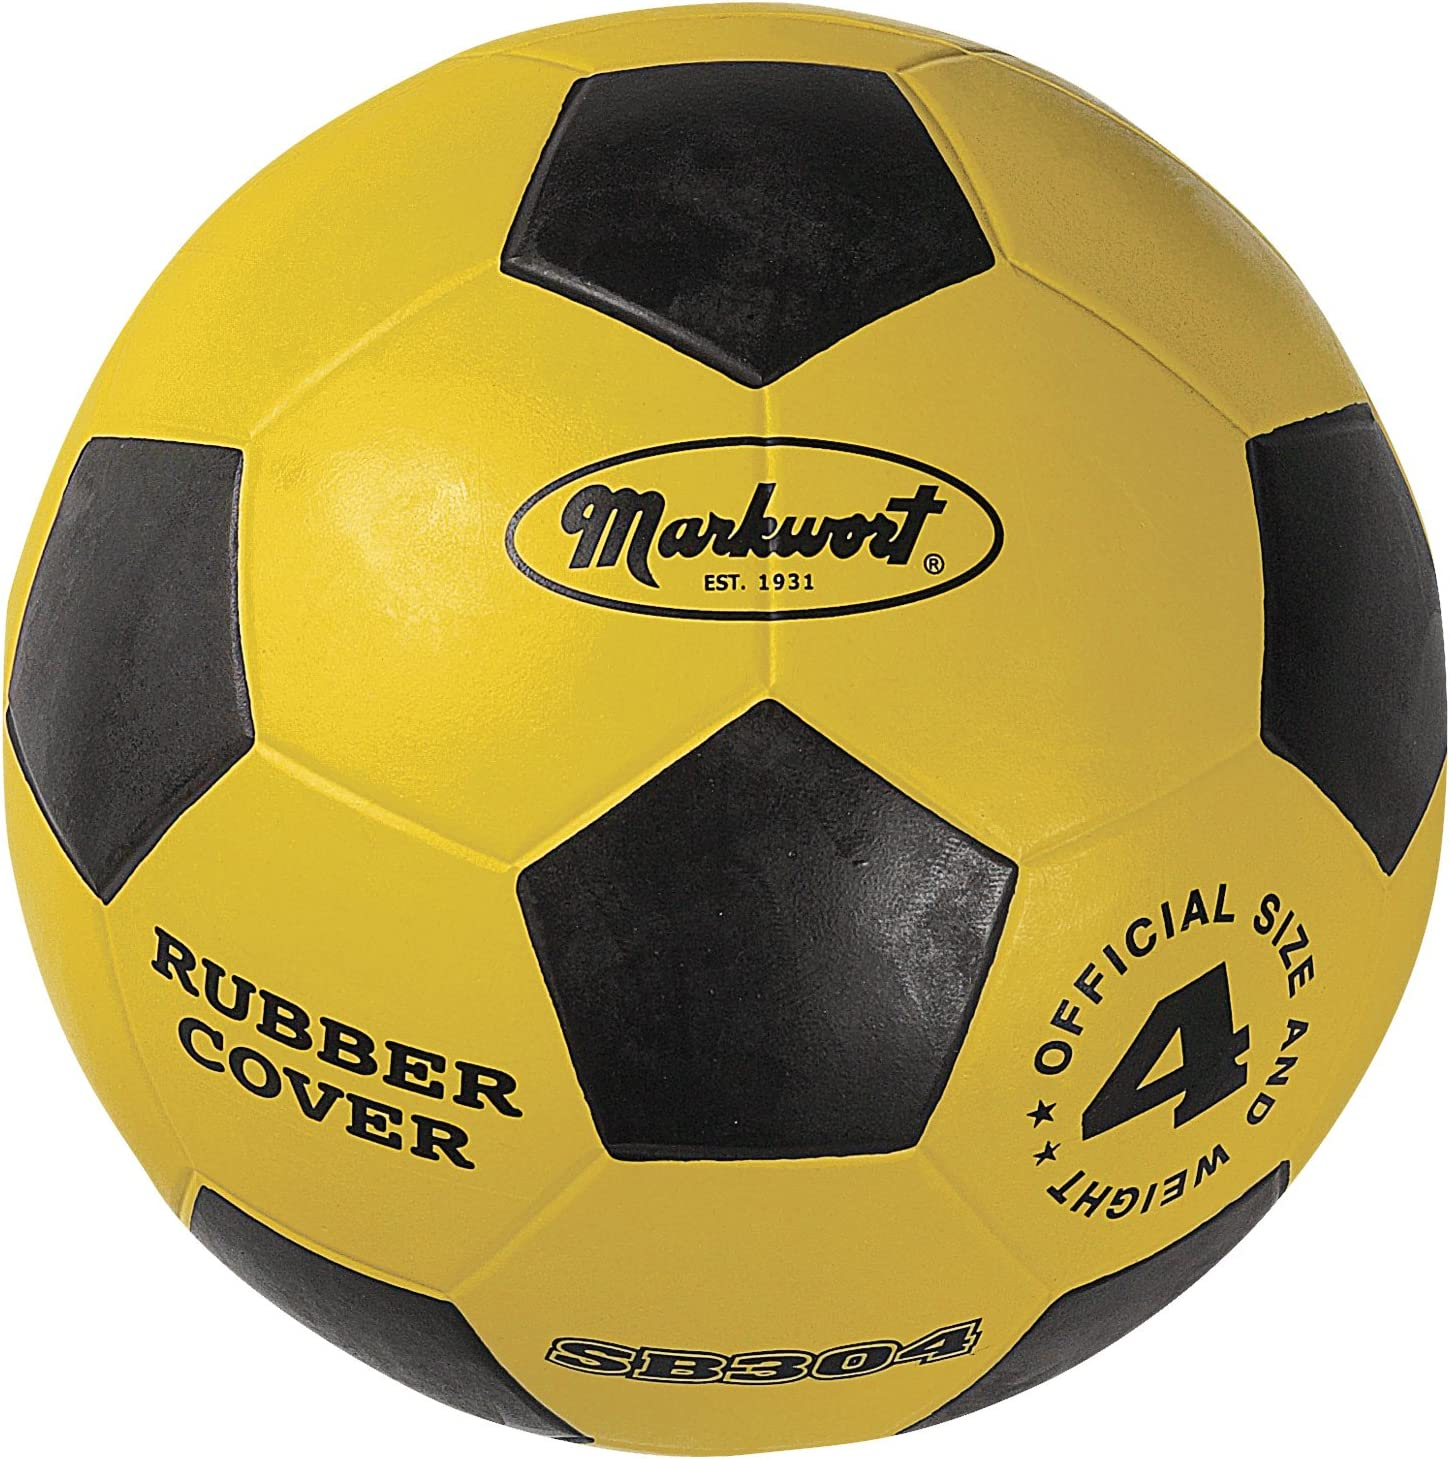 Popular product Markwort Jr. quality assurance Size-4 Rubber Cover Yellow Ball Soccer